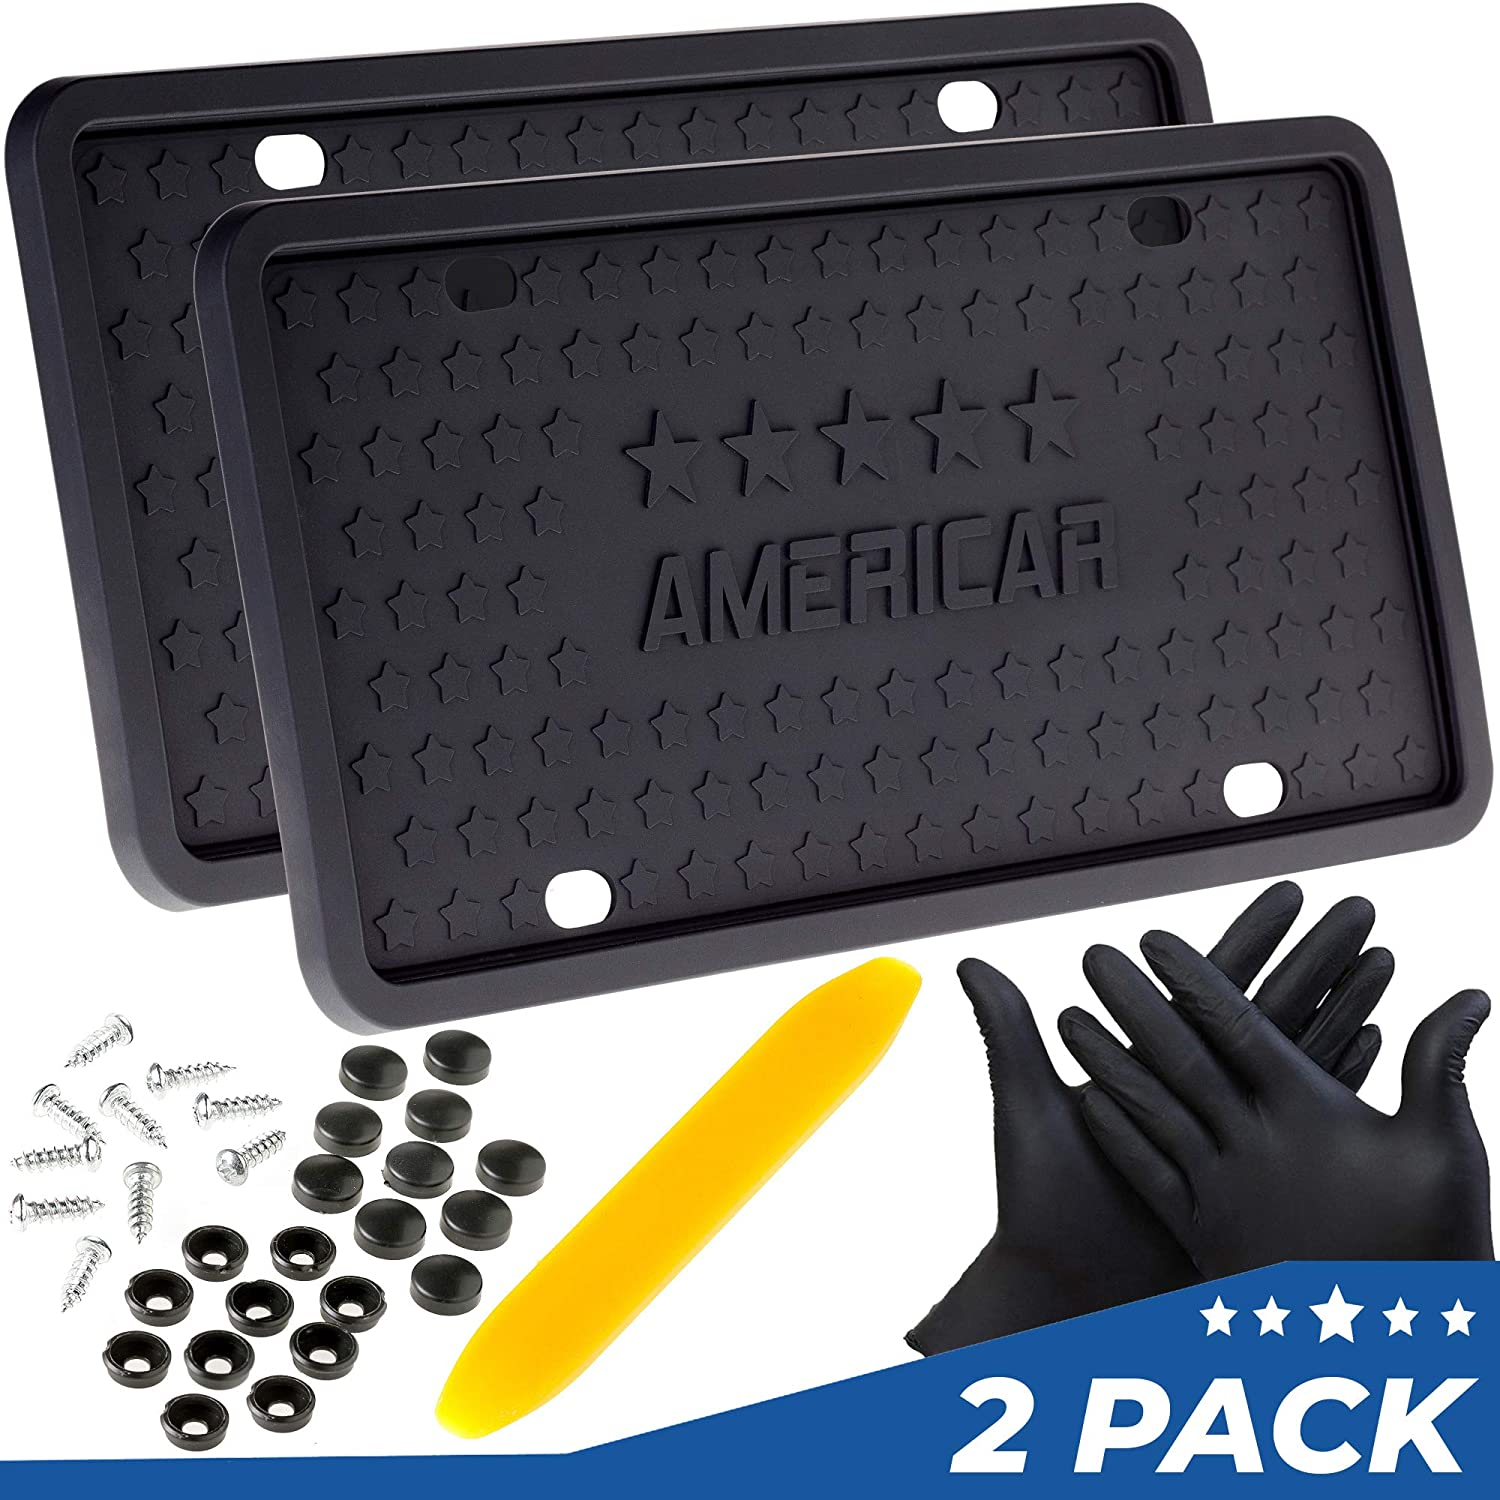 AMERICAR Premium License Plate Frame 2 Pack Kit – Black Silicone Car License Plate Holder/Frame – Rattle Proof, Scratch Proof, Rust Proof, Street Legal – Mounting Kit Included